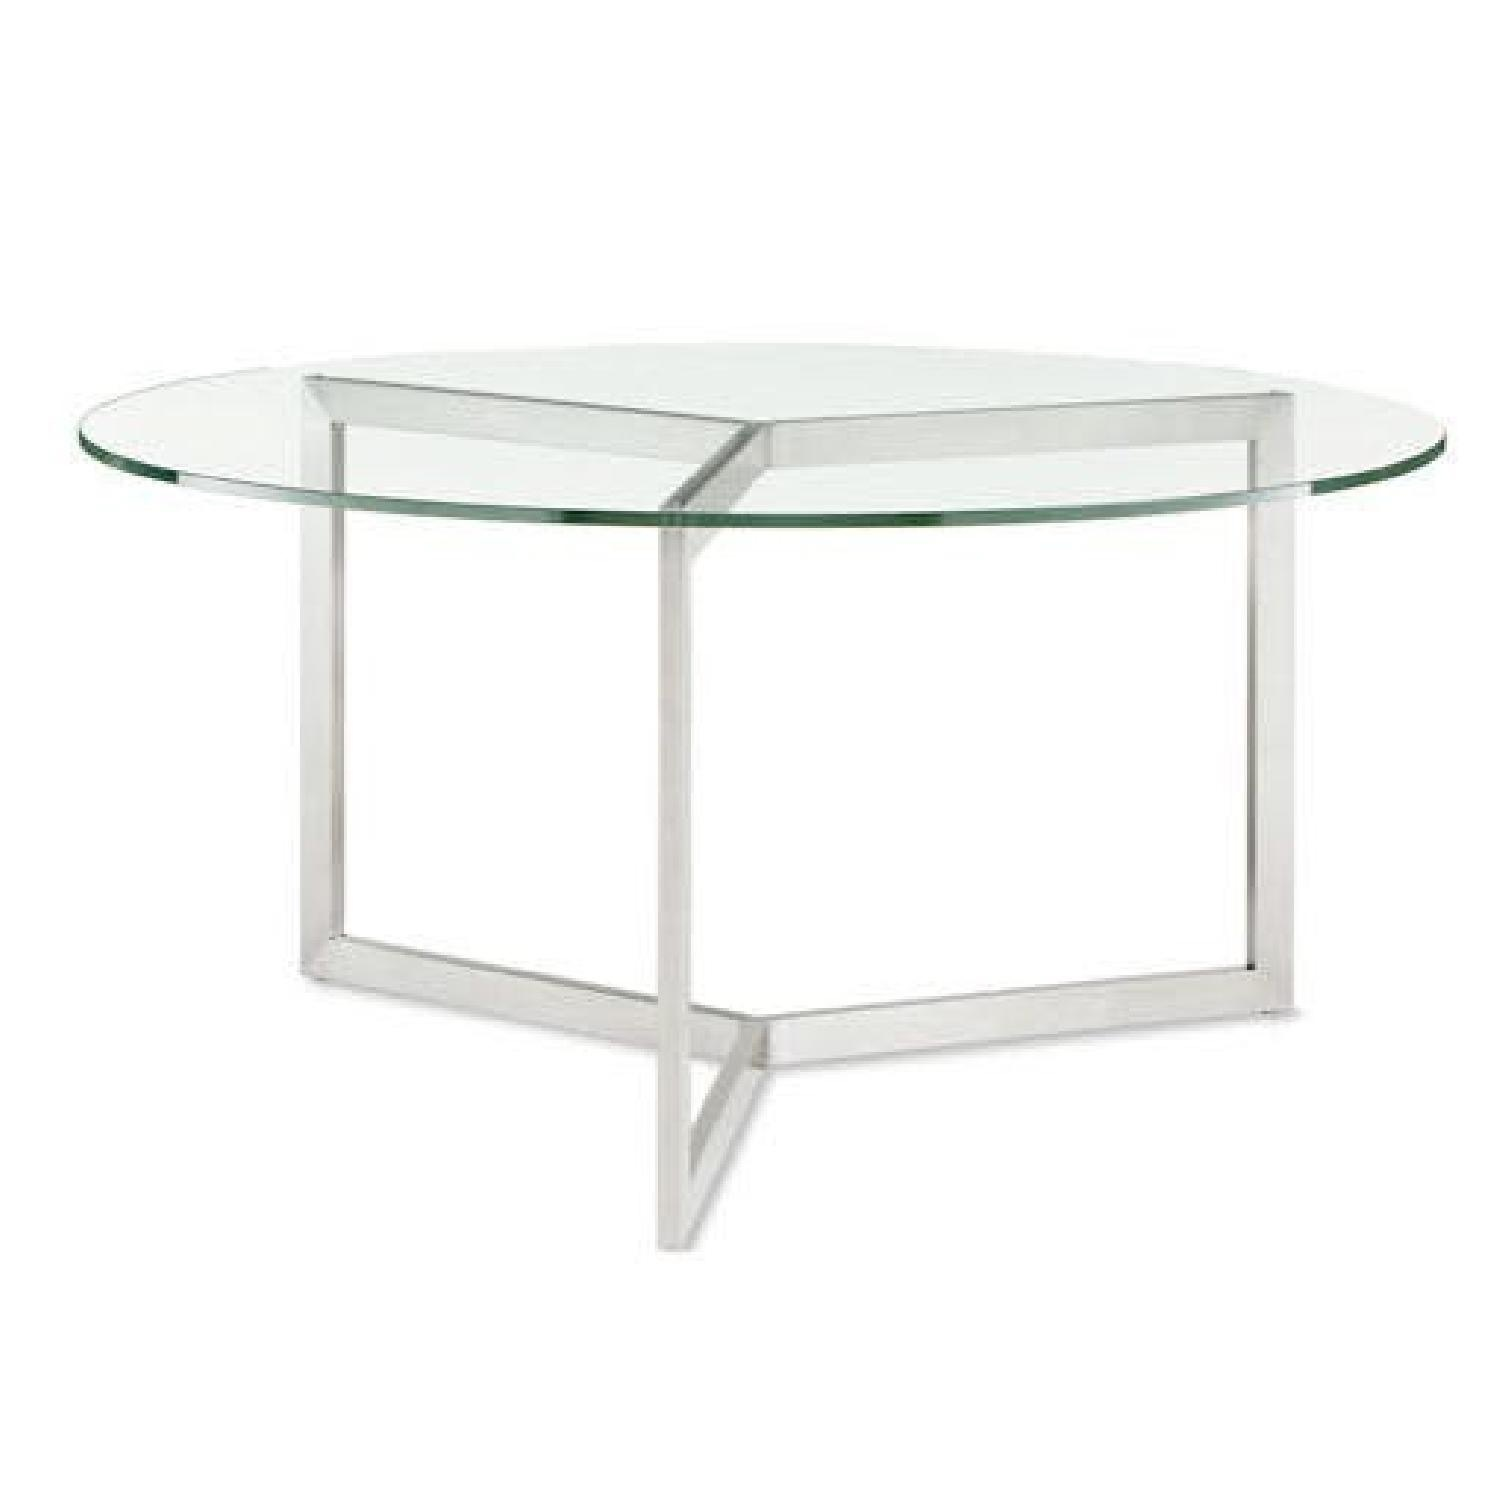 Room & Board Glass Dining Table - image-0